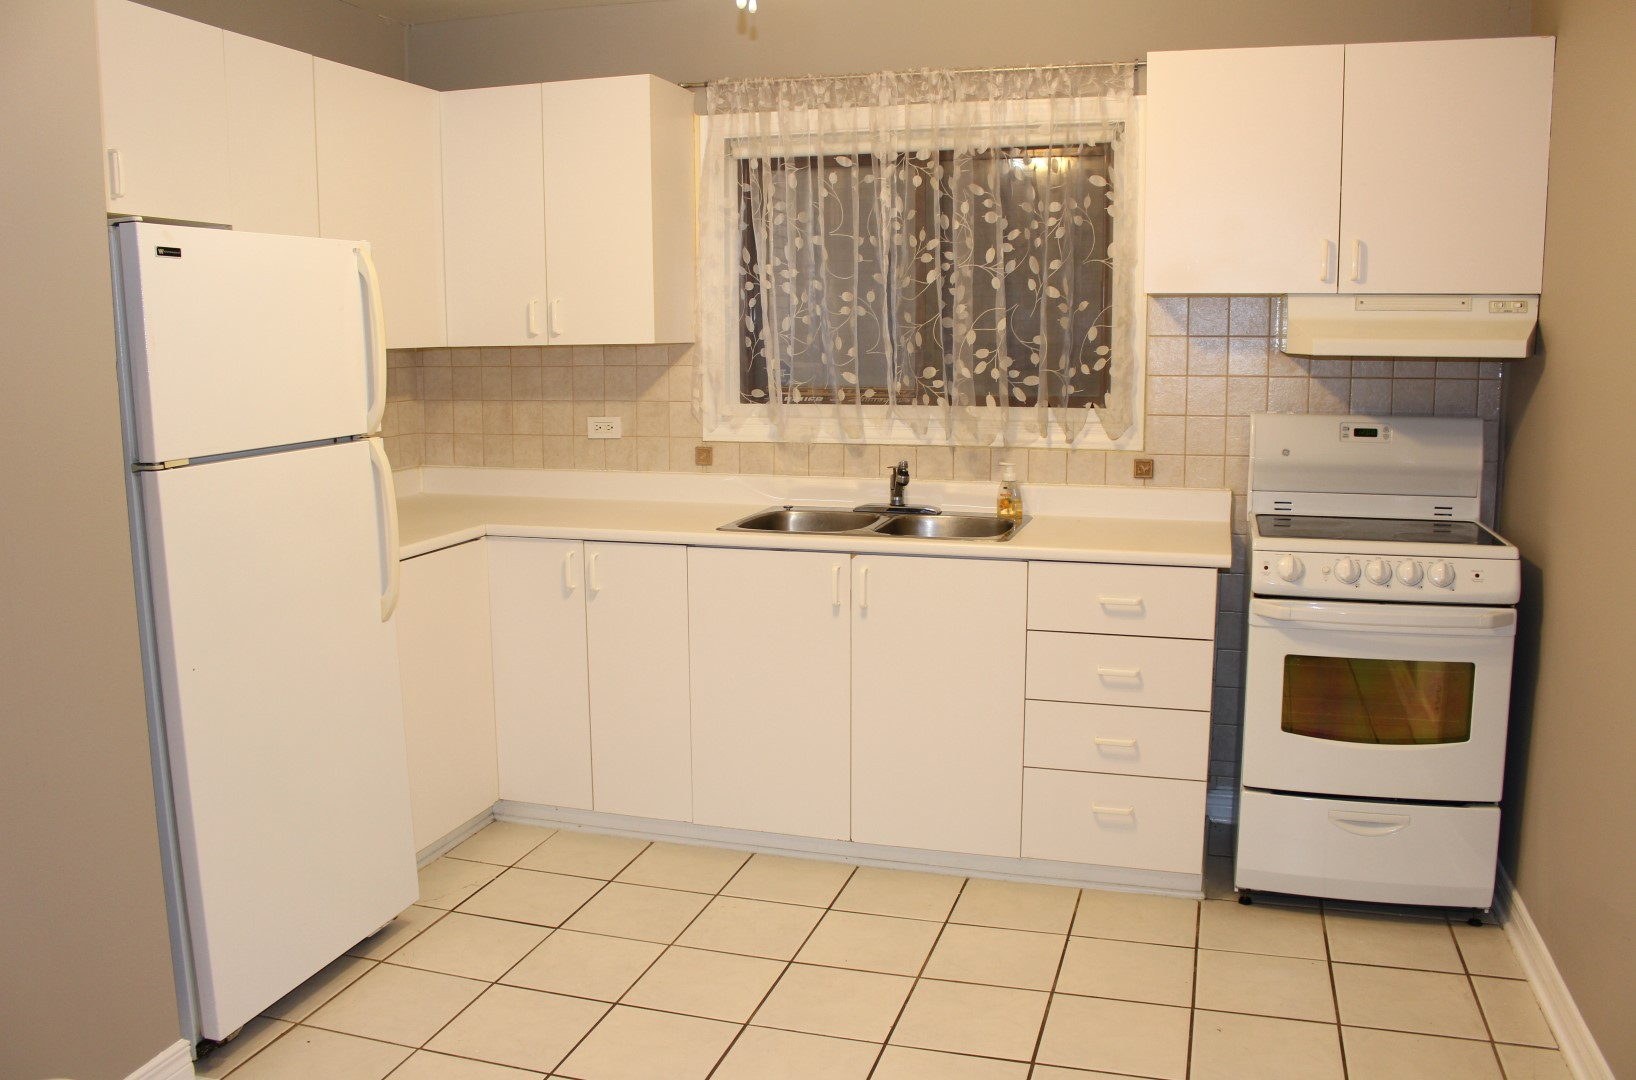 Spacious 2 bedroom rental in Beechwood Village! ** #996E32